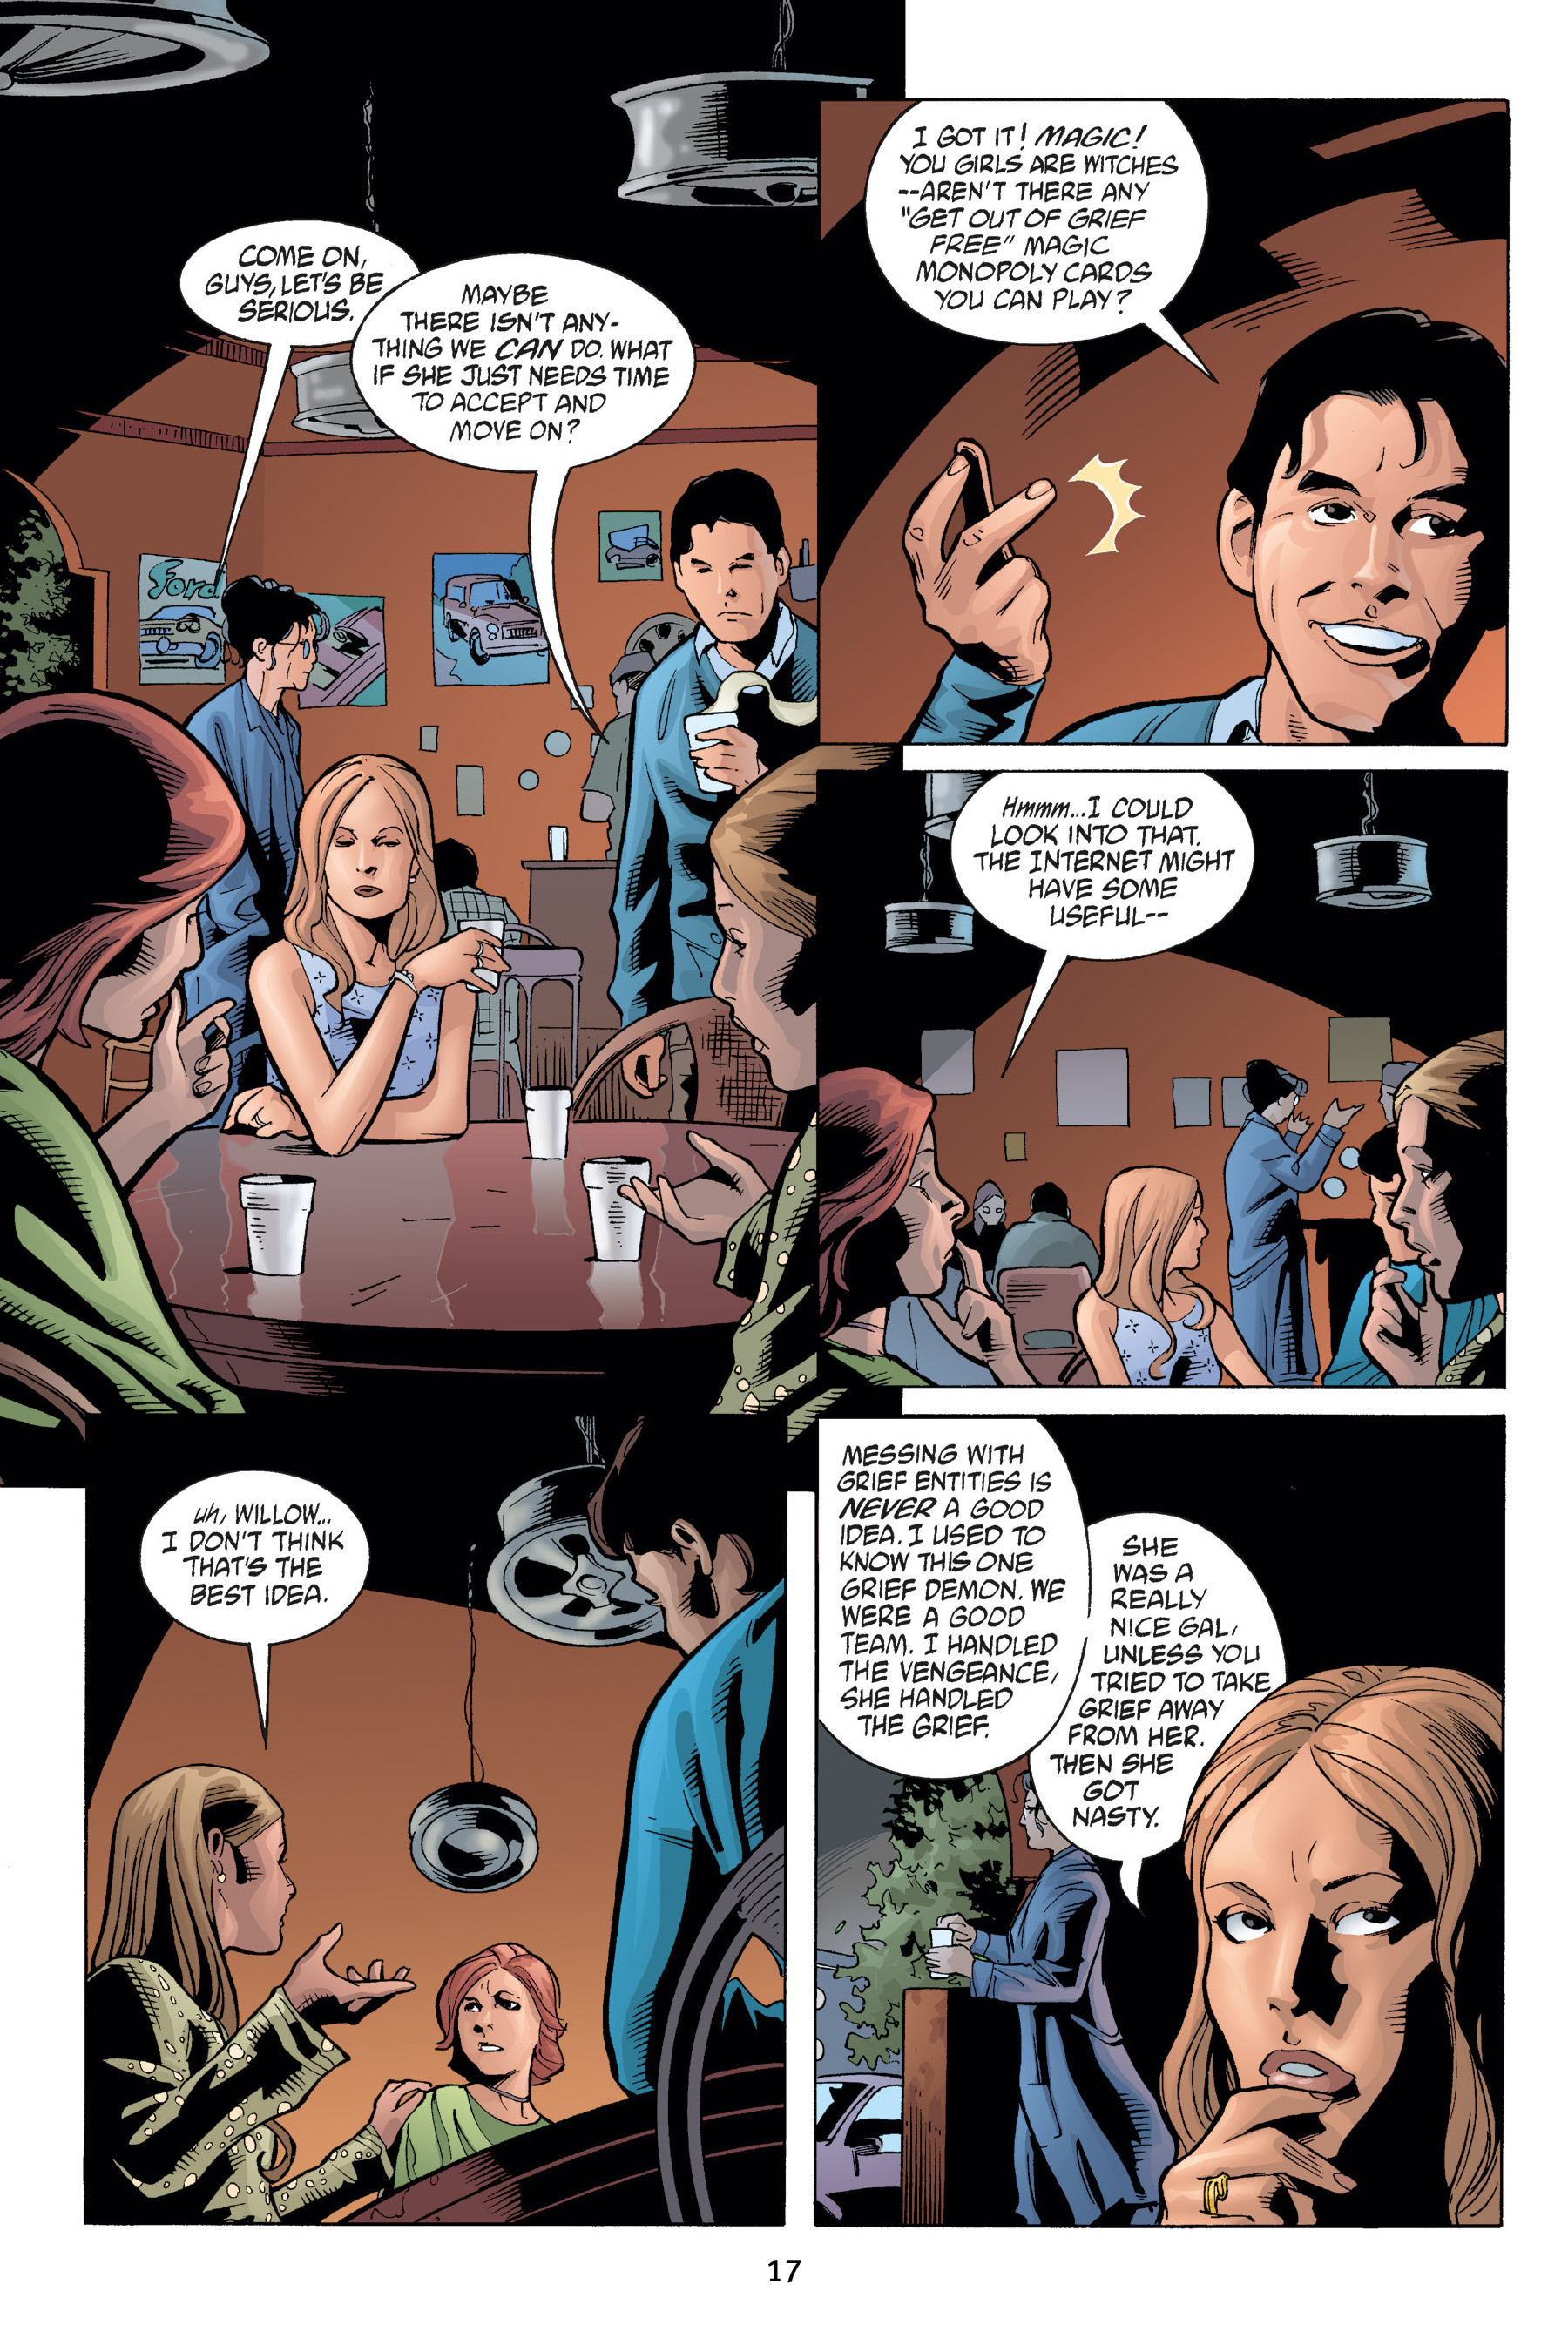 Read online Buffy the Vampire Slayer: Omnibus comic -  Issue # TPB 7 - 19